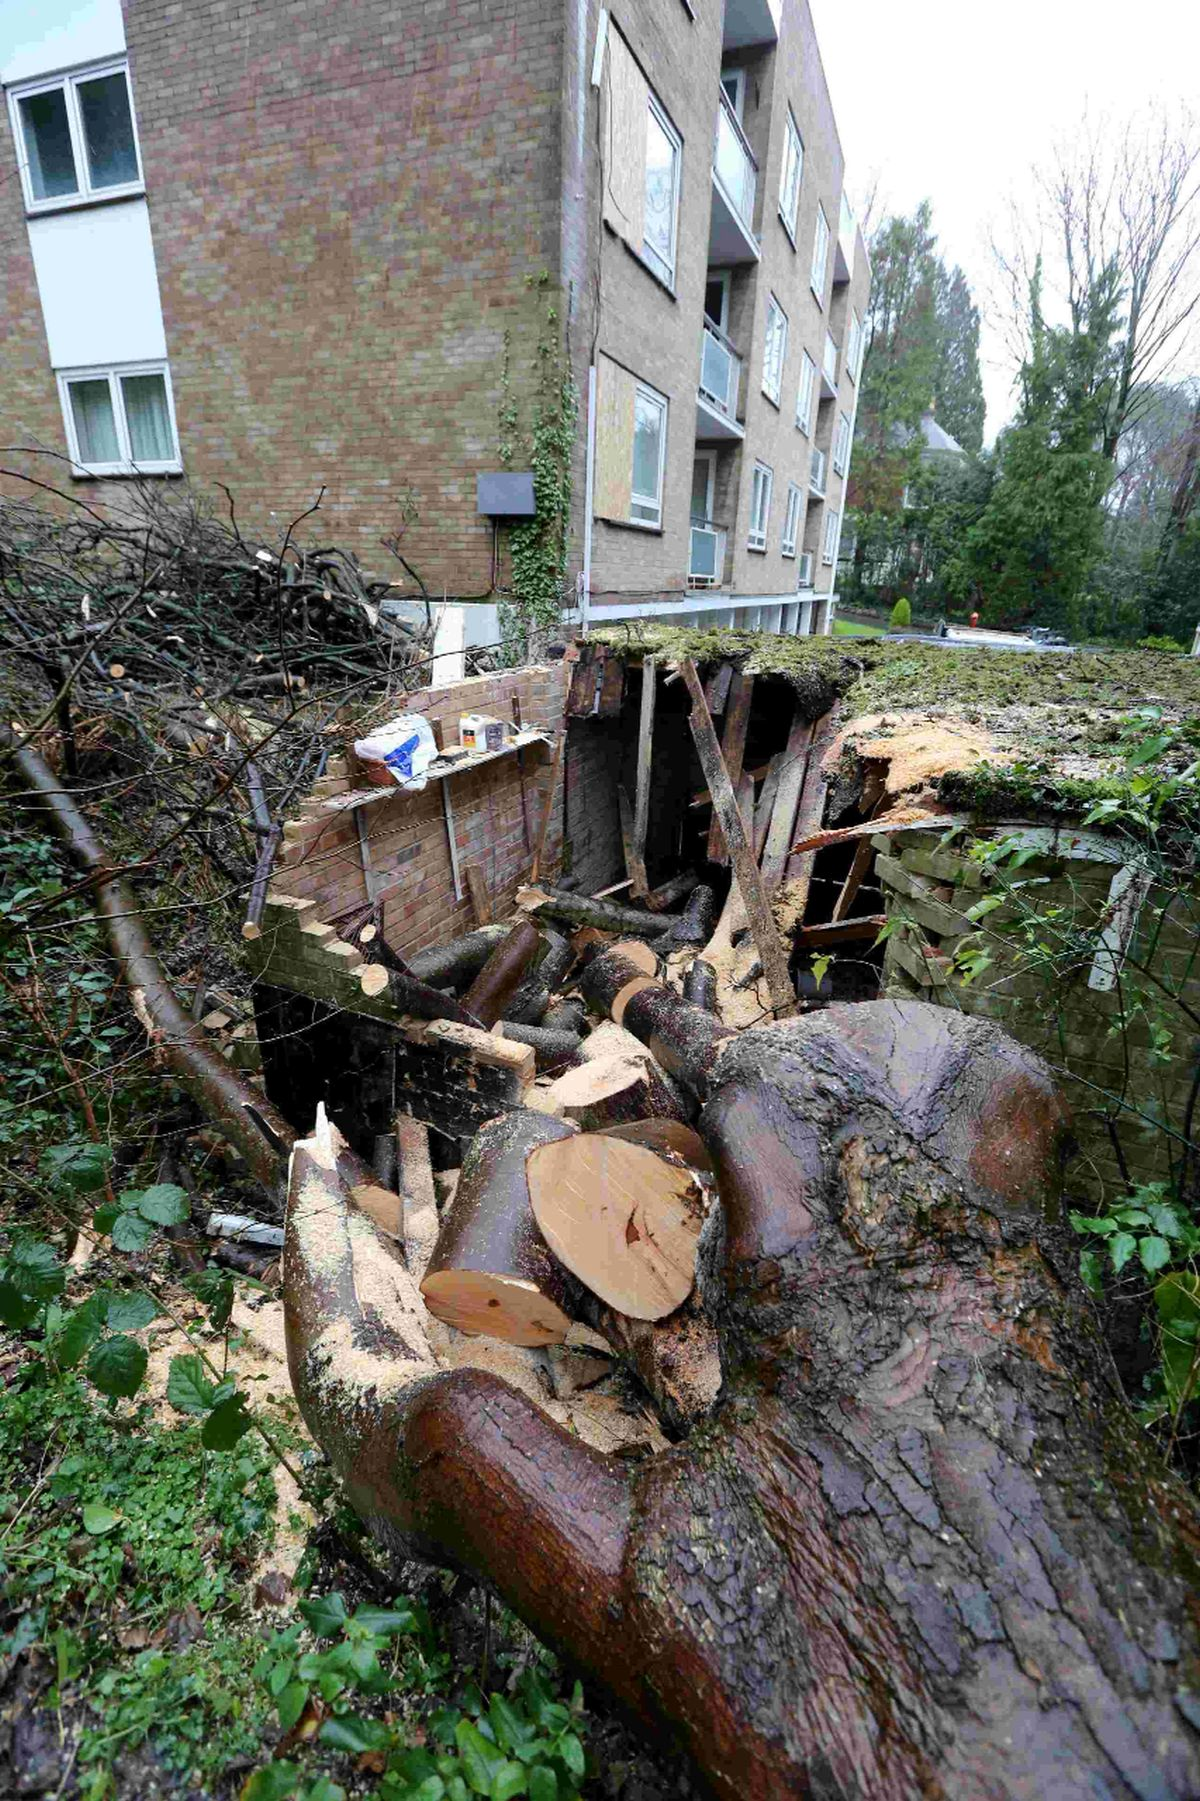 'I could have been killed' – lucky escape for residents as 120ft tree crashes through windows at flats